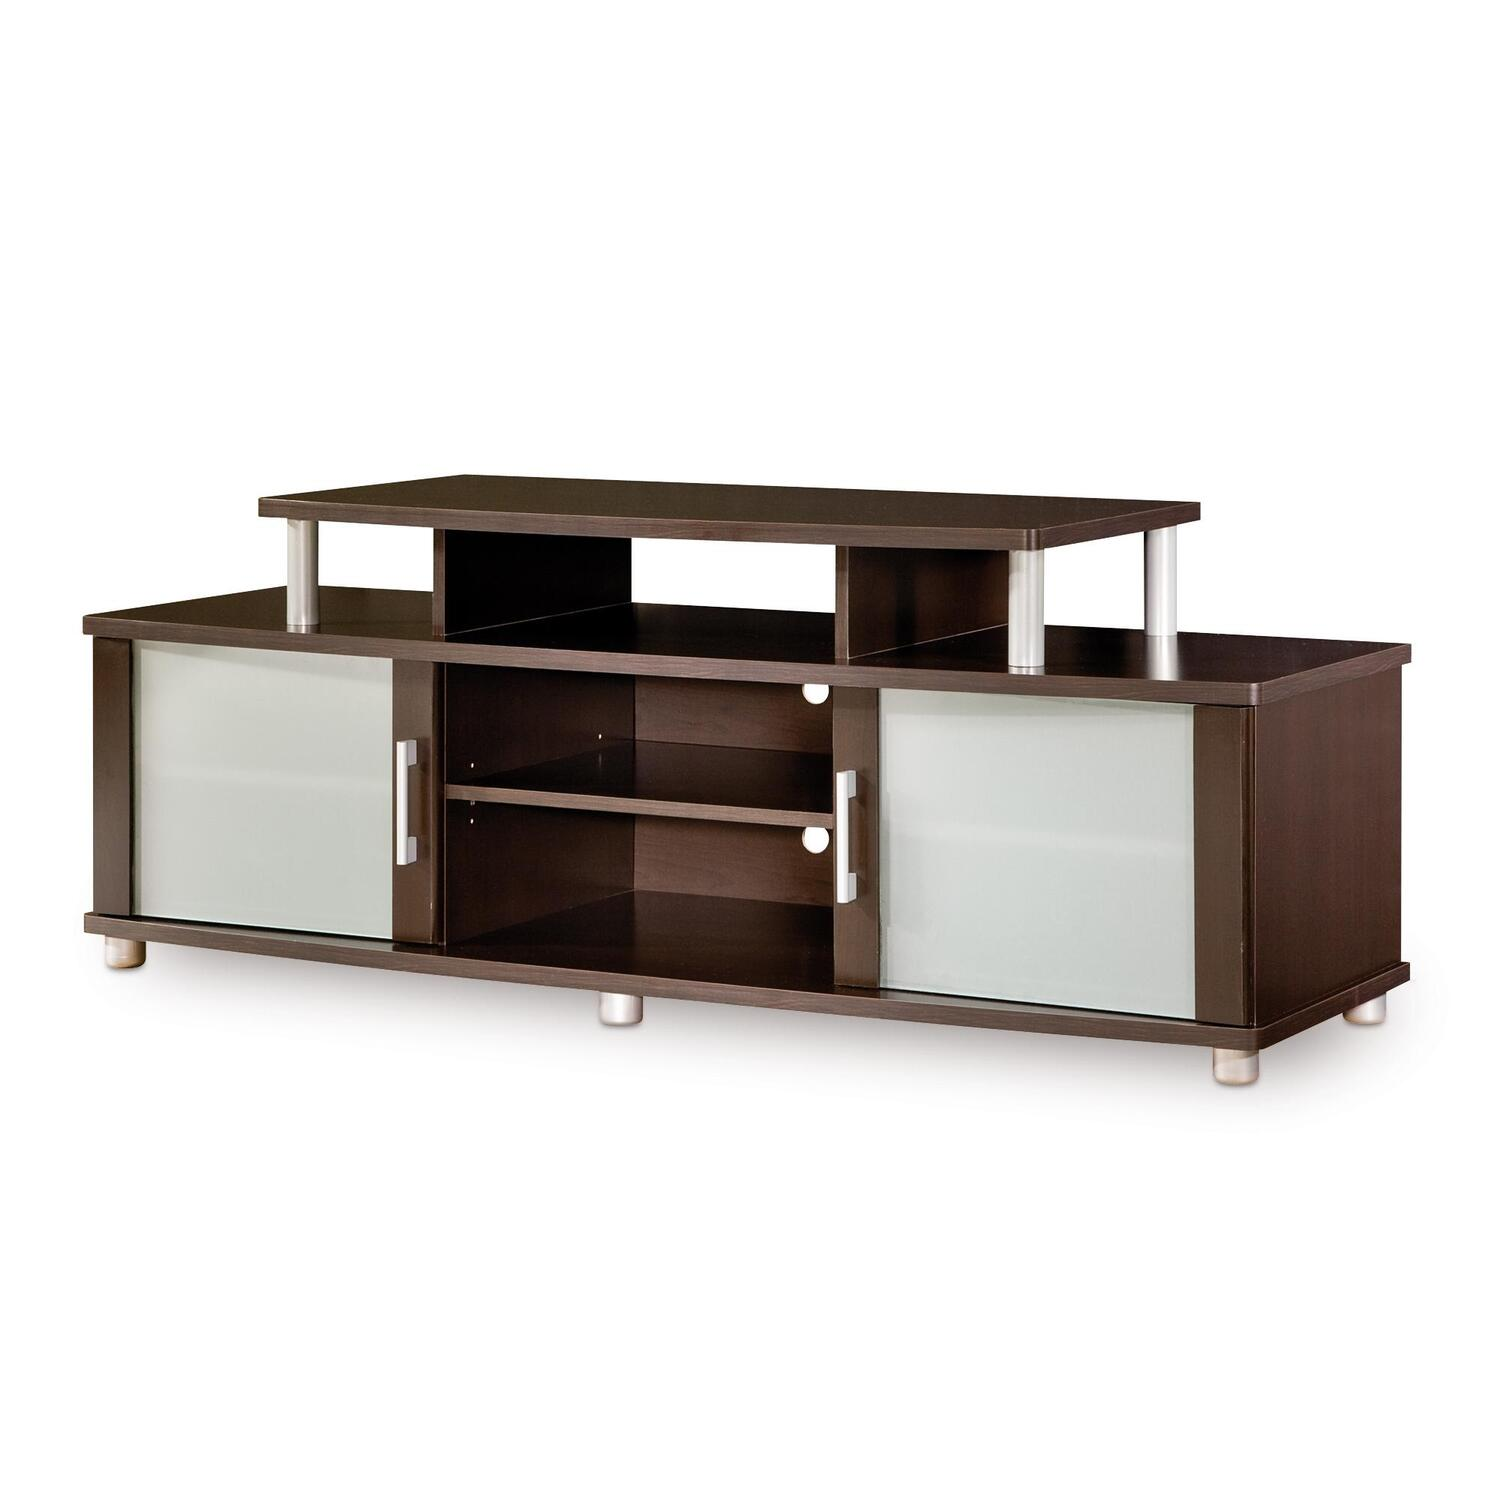 value city tv stands  cool modern wall units home design value  - city life tv stand